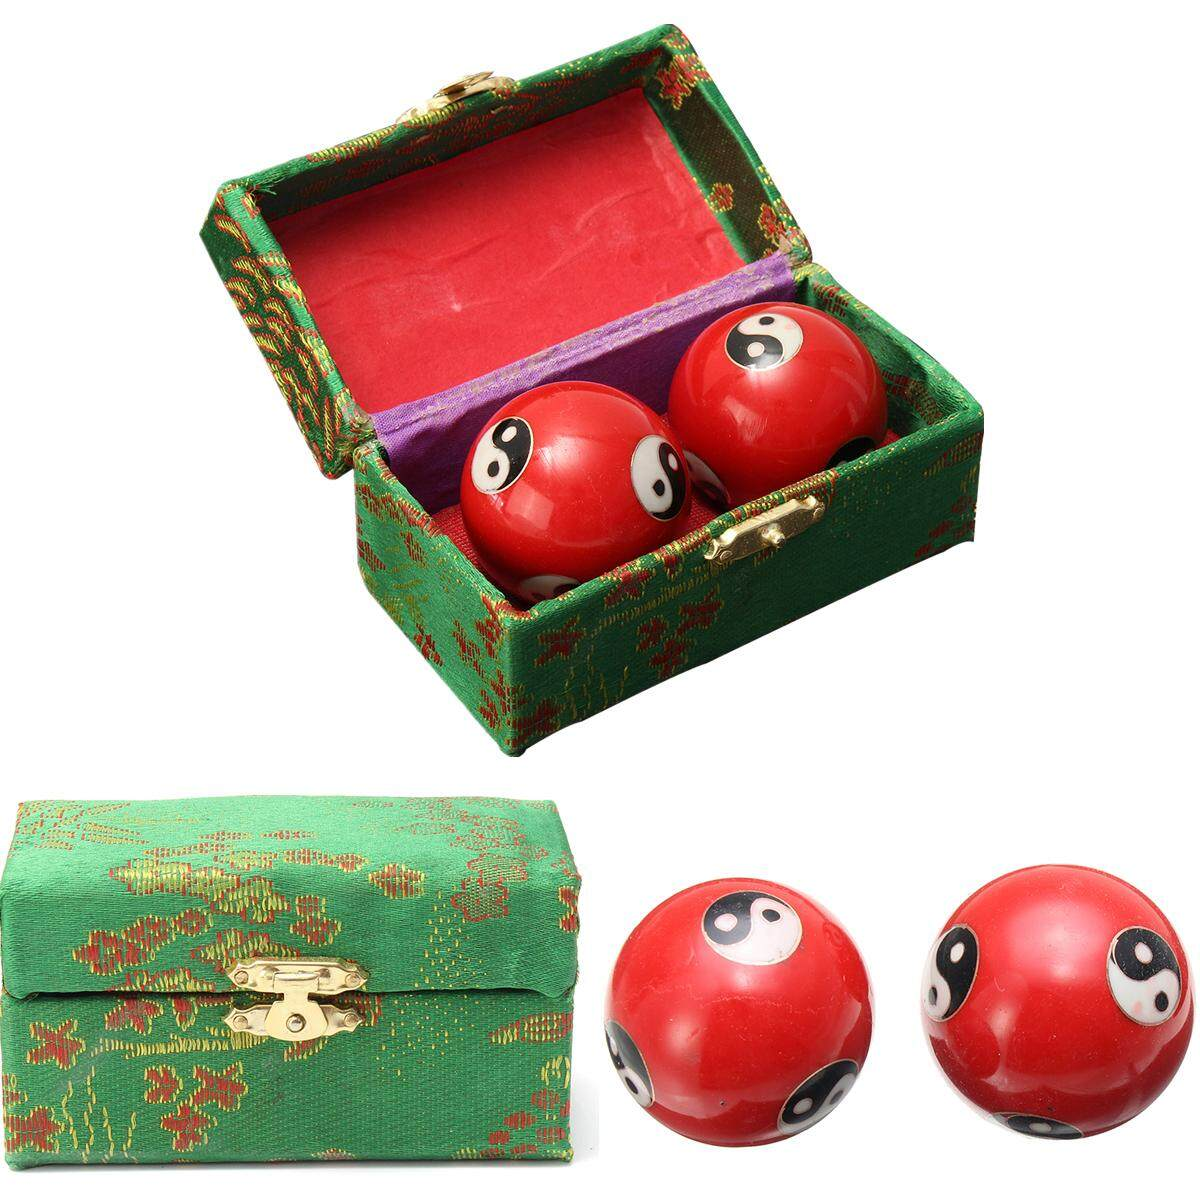 Chinese Health Exercise Stress Relief Baoding Balls Yin Yang Red 42mm + Case By Glimmer.